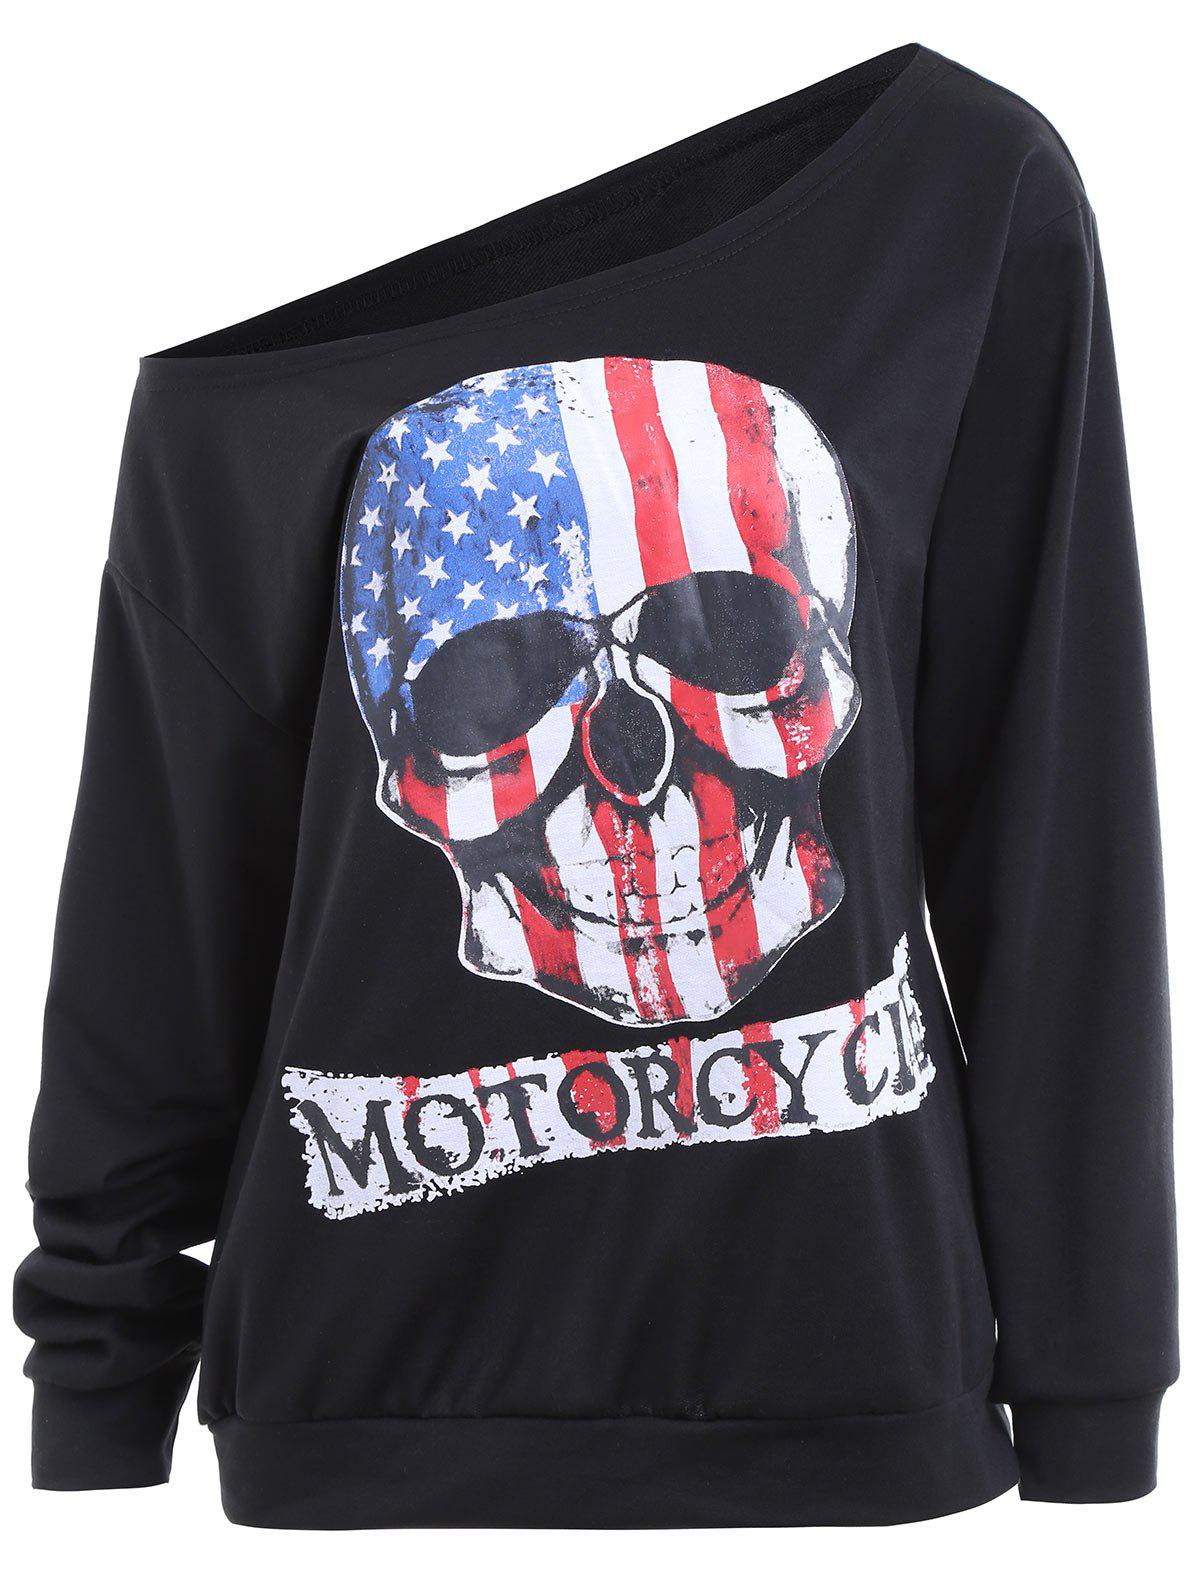 Plus Size Halloween Skull Print Patriotic American Flag SweatshirtWOMEN<br><br>Size: 5XL; Color: BLACK; Material: Cotton,Polyester; Shirt Length: Regular; Sleeve Length: Full; Style: Fashion; Pattern Style: American Flag,Letter,Skulls; Season: Fall; Weight: 0.3700kg; Package Contents: 1 x Sweatshirt;